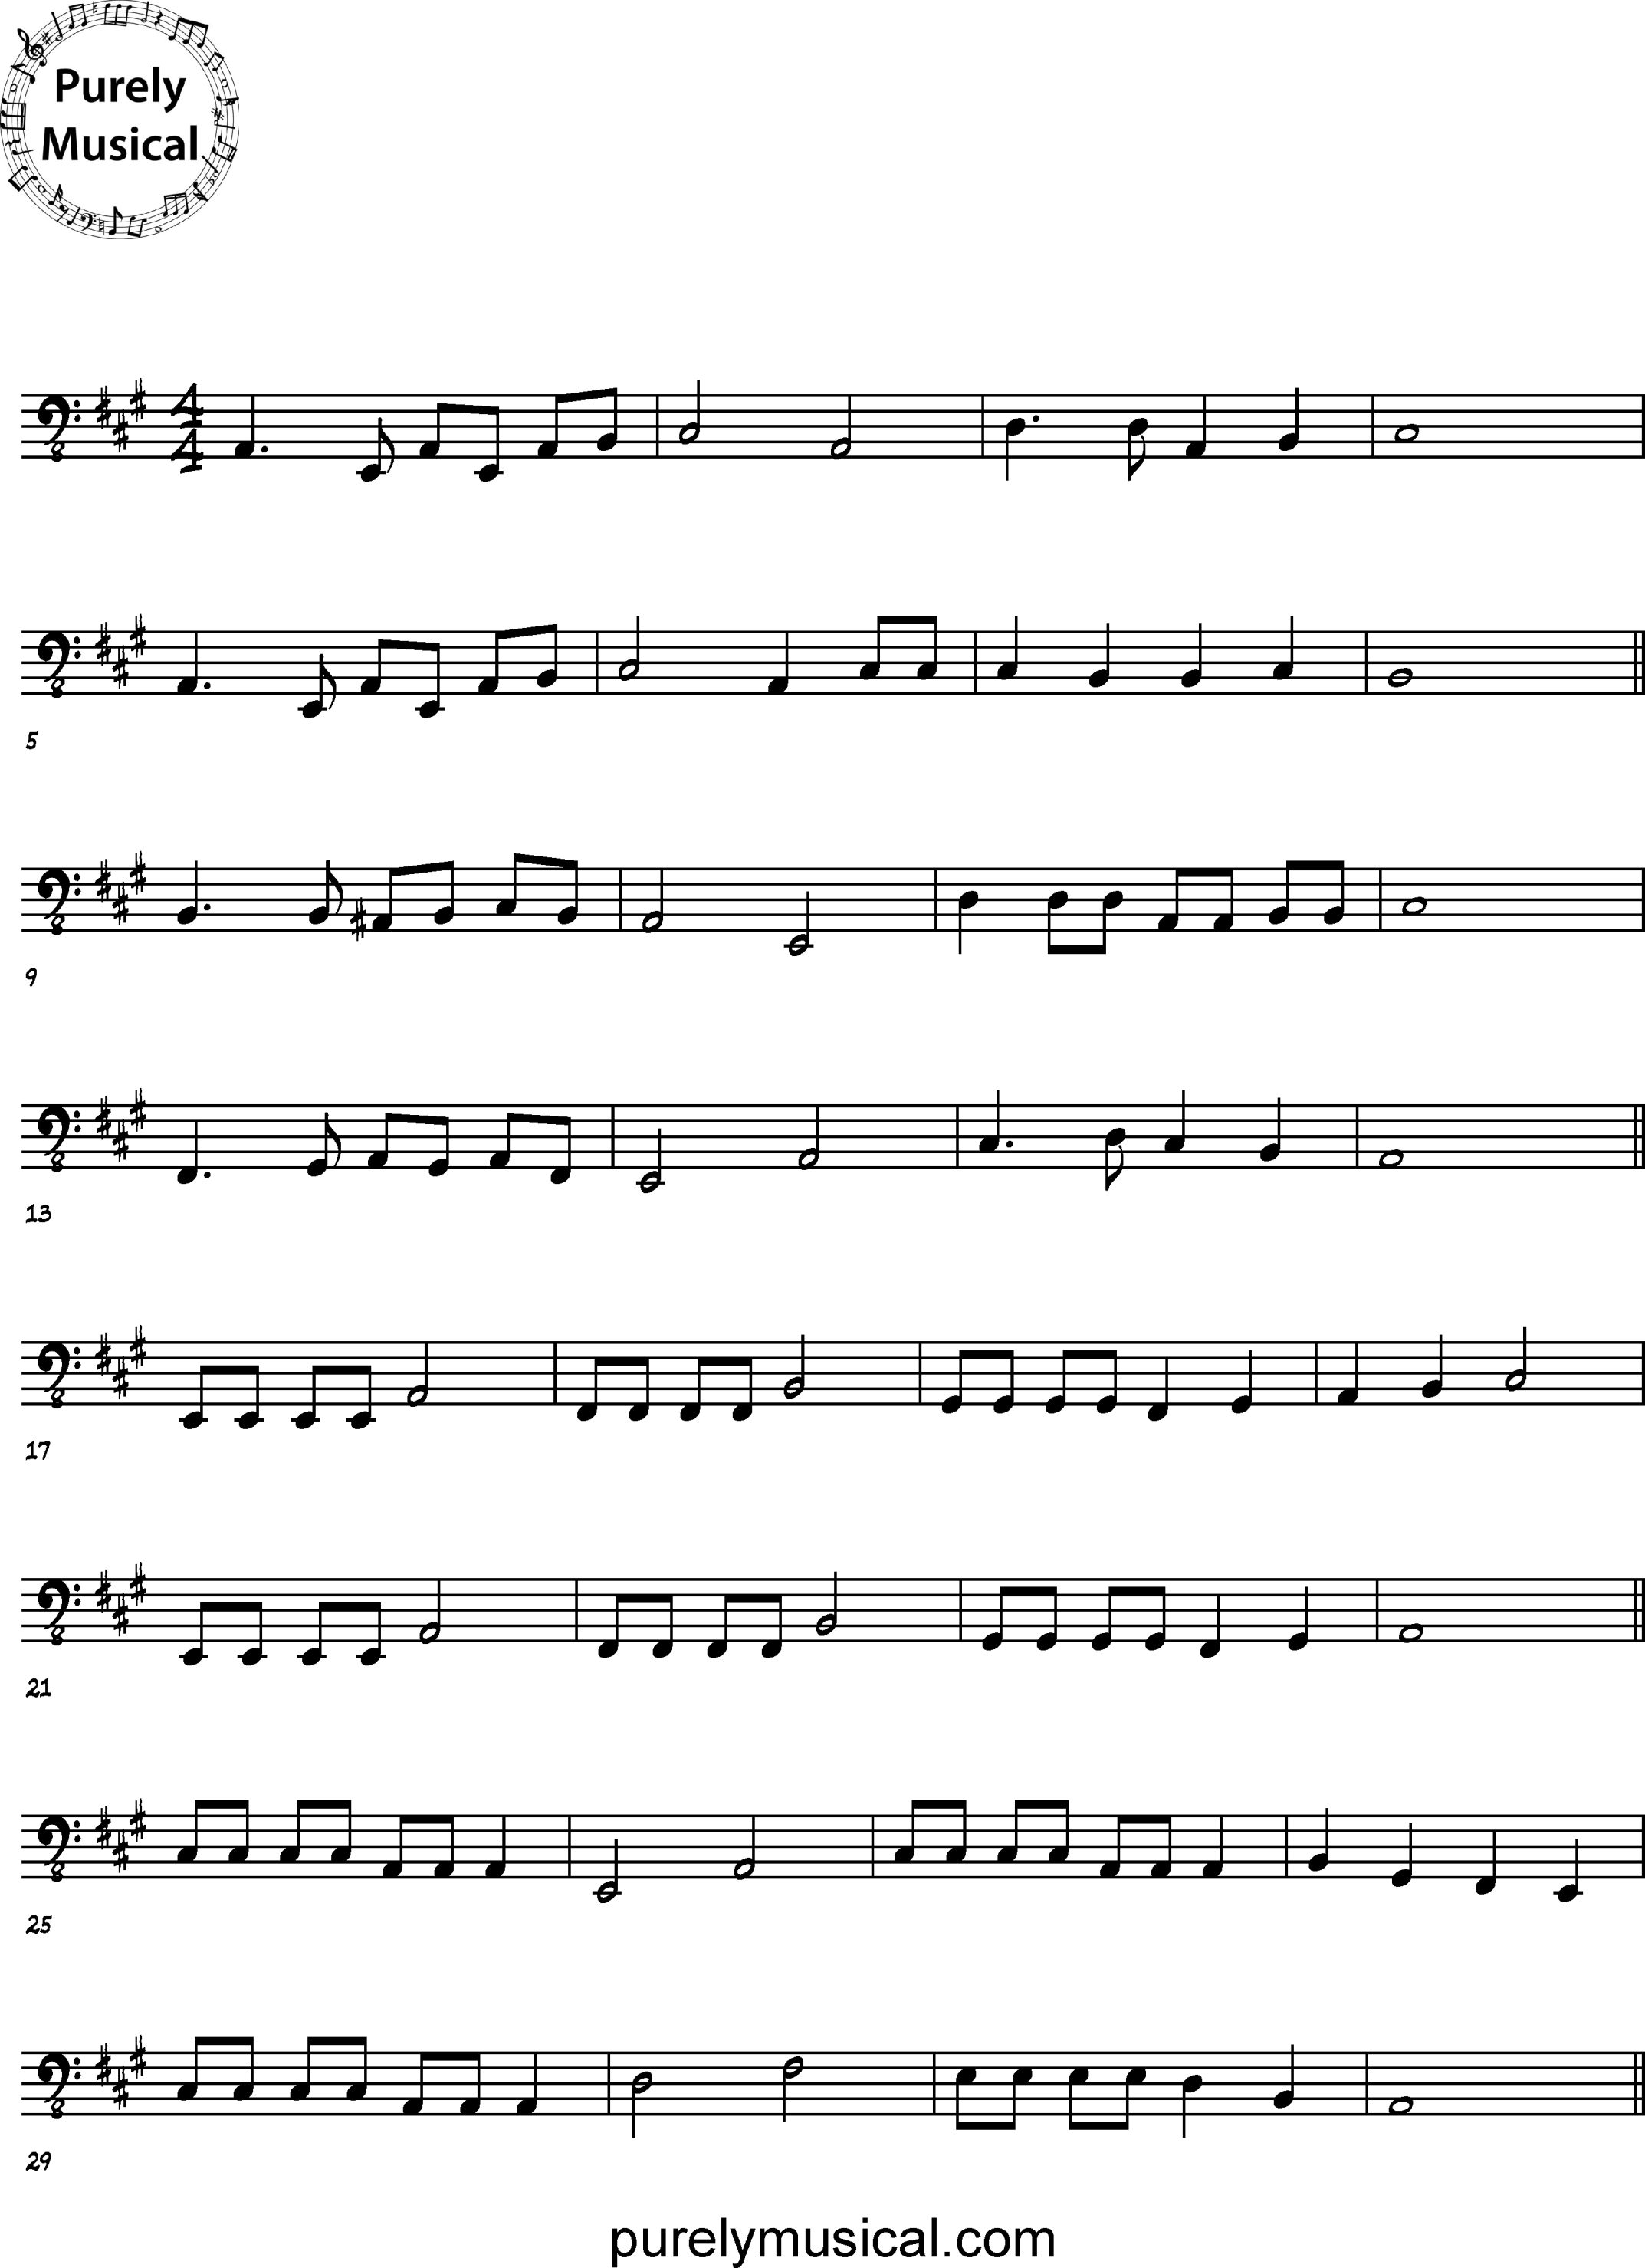 Intermediate  Melodic Execise I've Been Working On The Railroad for Double Bass